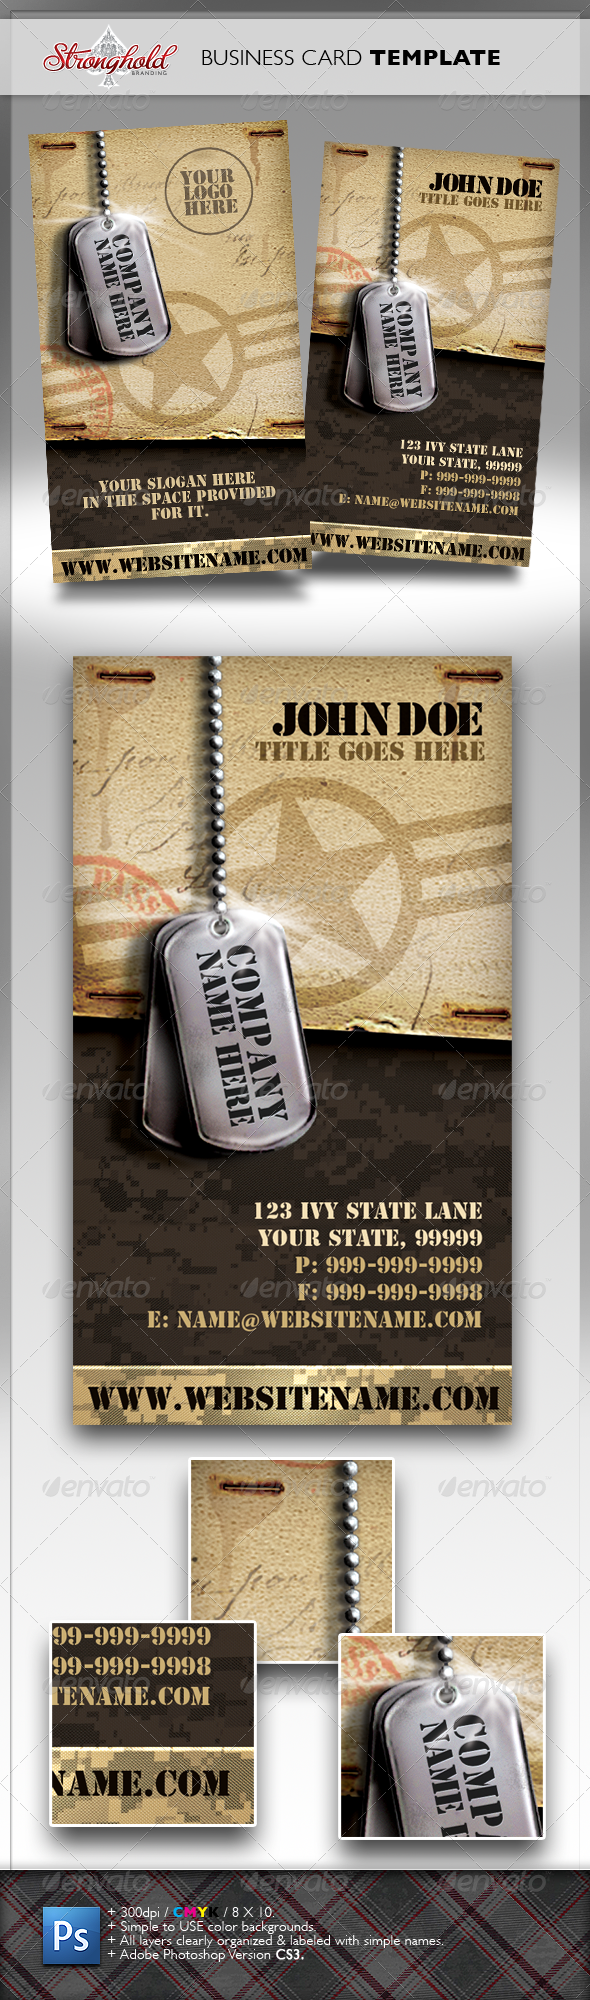 Vintage Military Business Card   Business cards, Business and Card ...